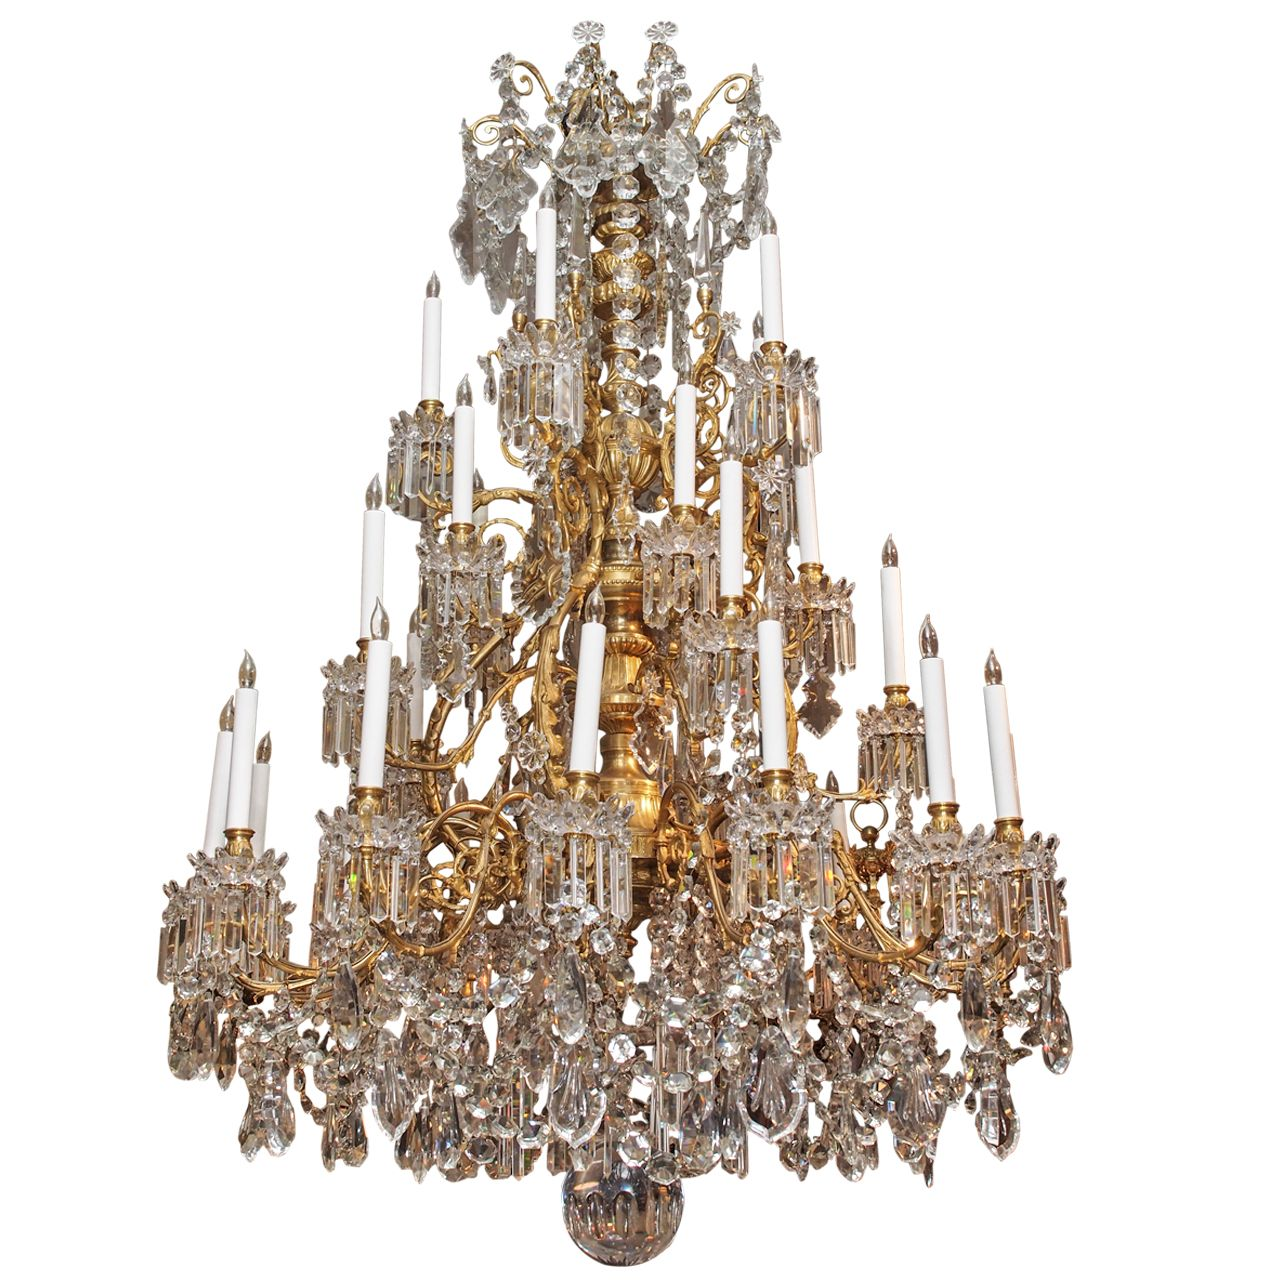 1stdibs.com | Magnificent Antique French Baccarat Crystal Chandelier circa  1850-1870 - 1stdibs.com Magnificent Antique French Baccarat Crystal